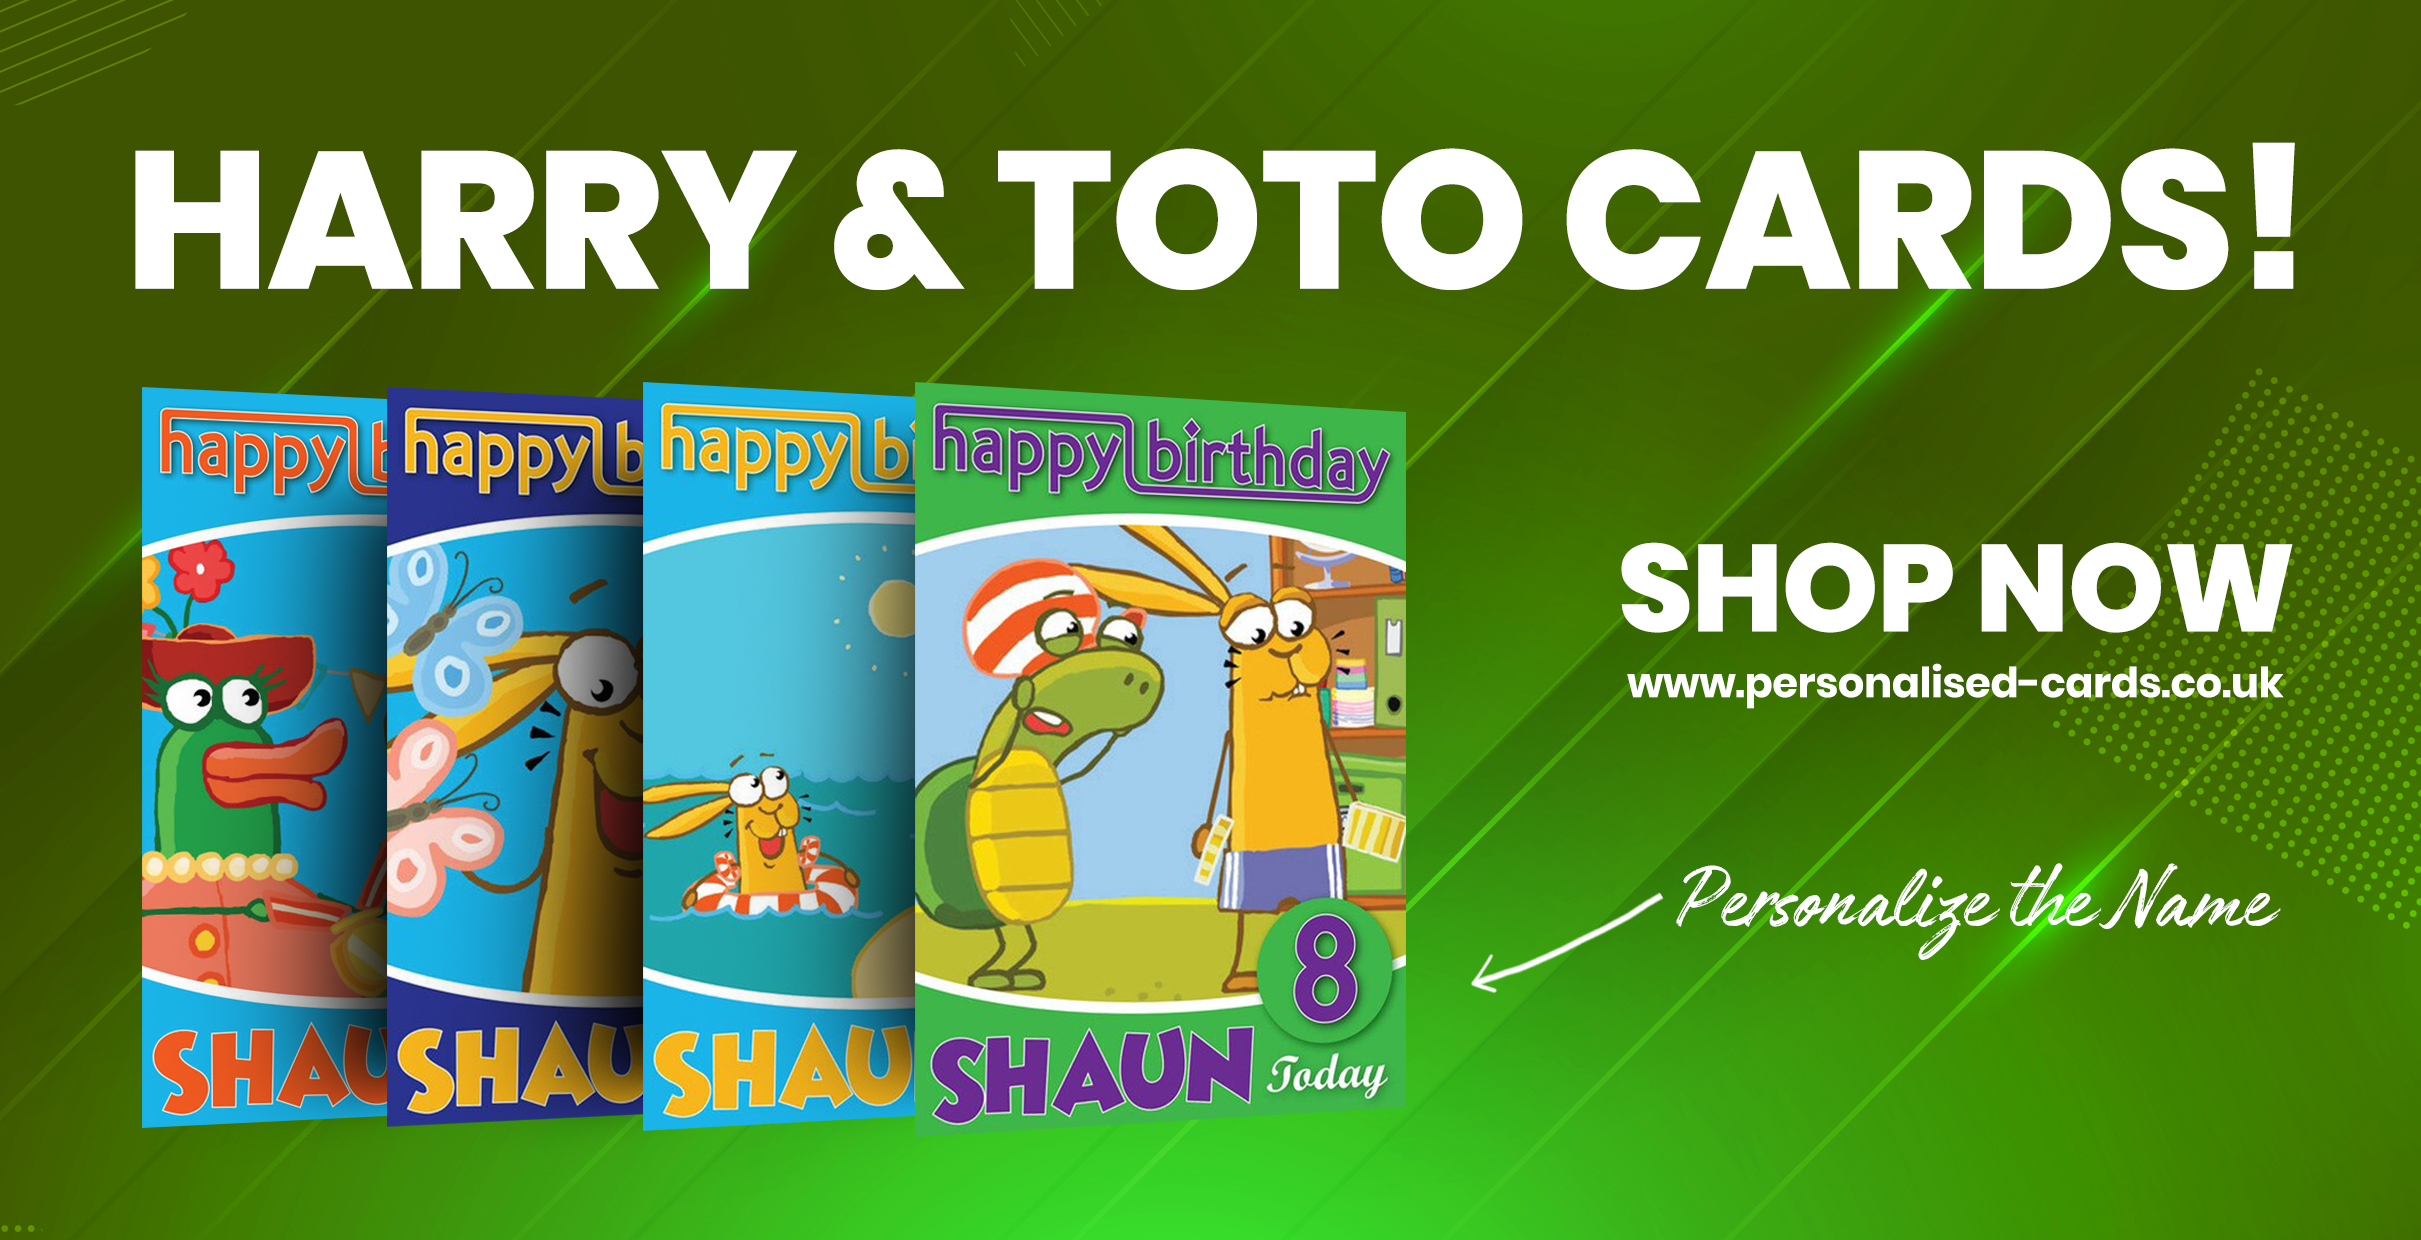 harry-and-toto-cards.jpg